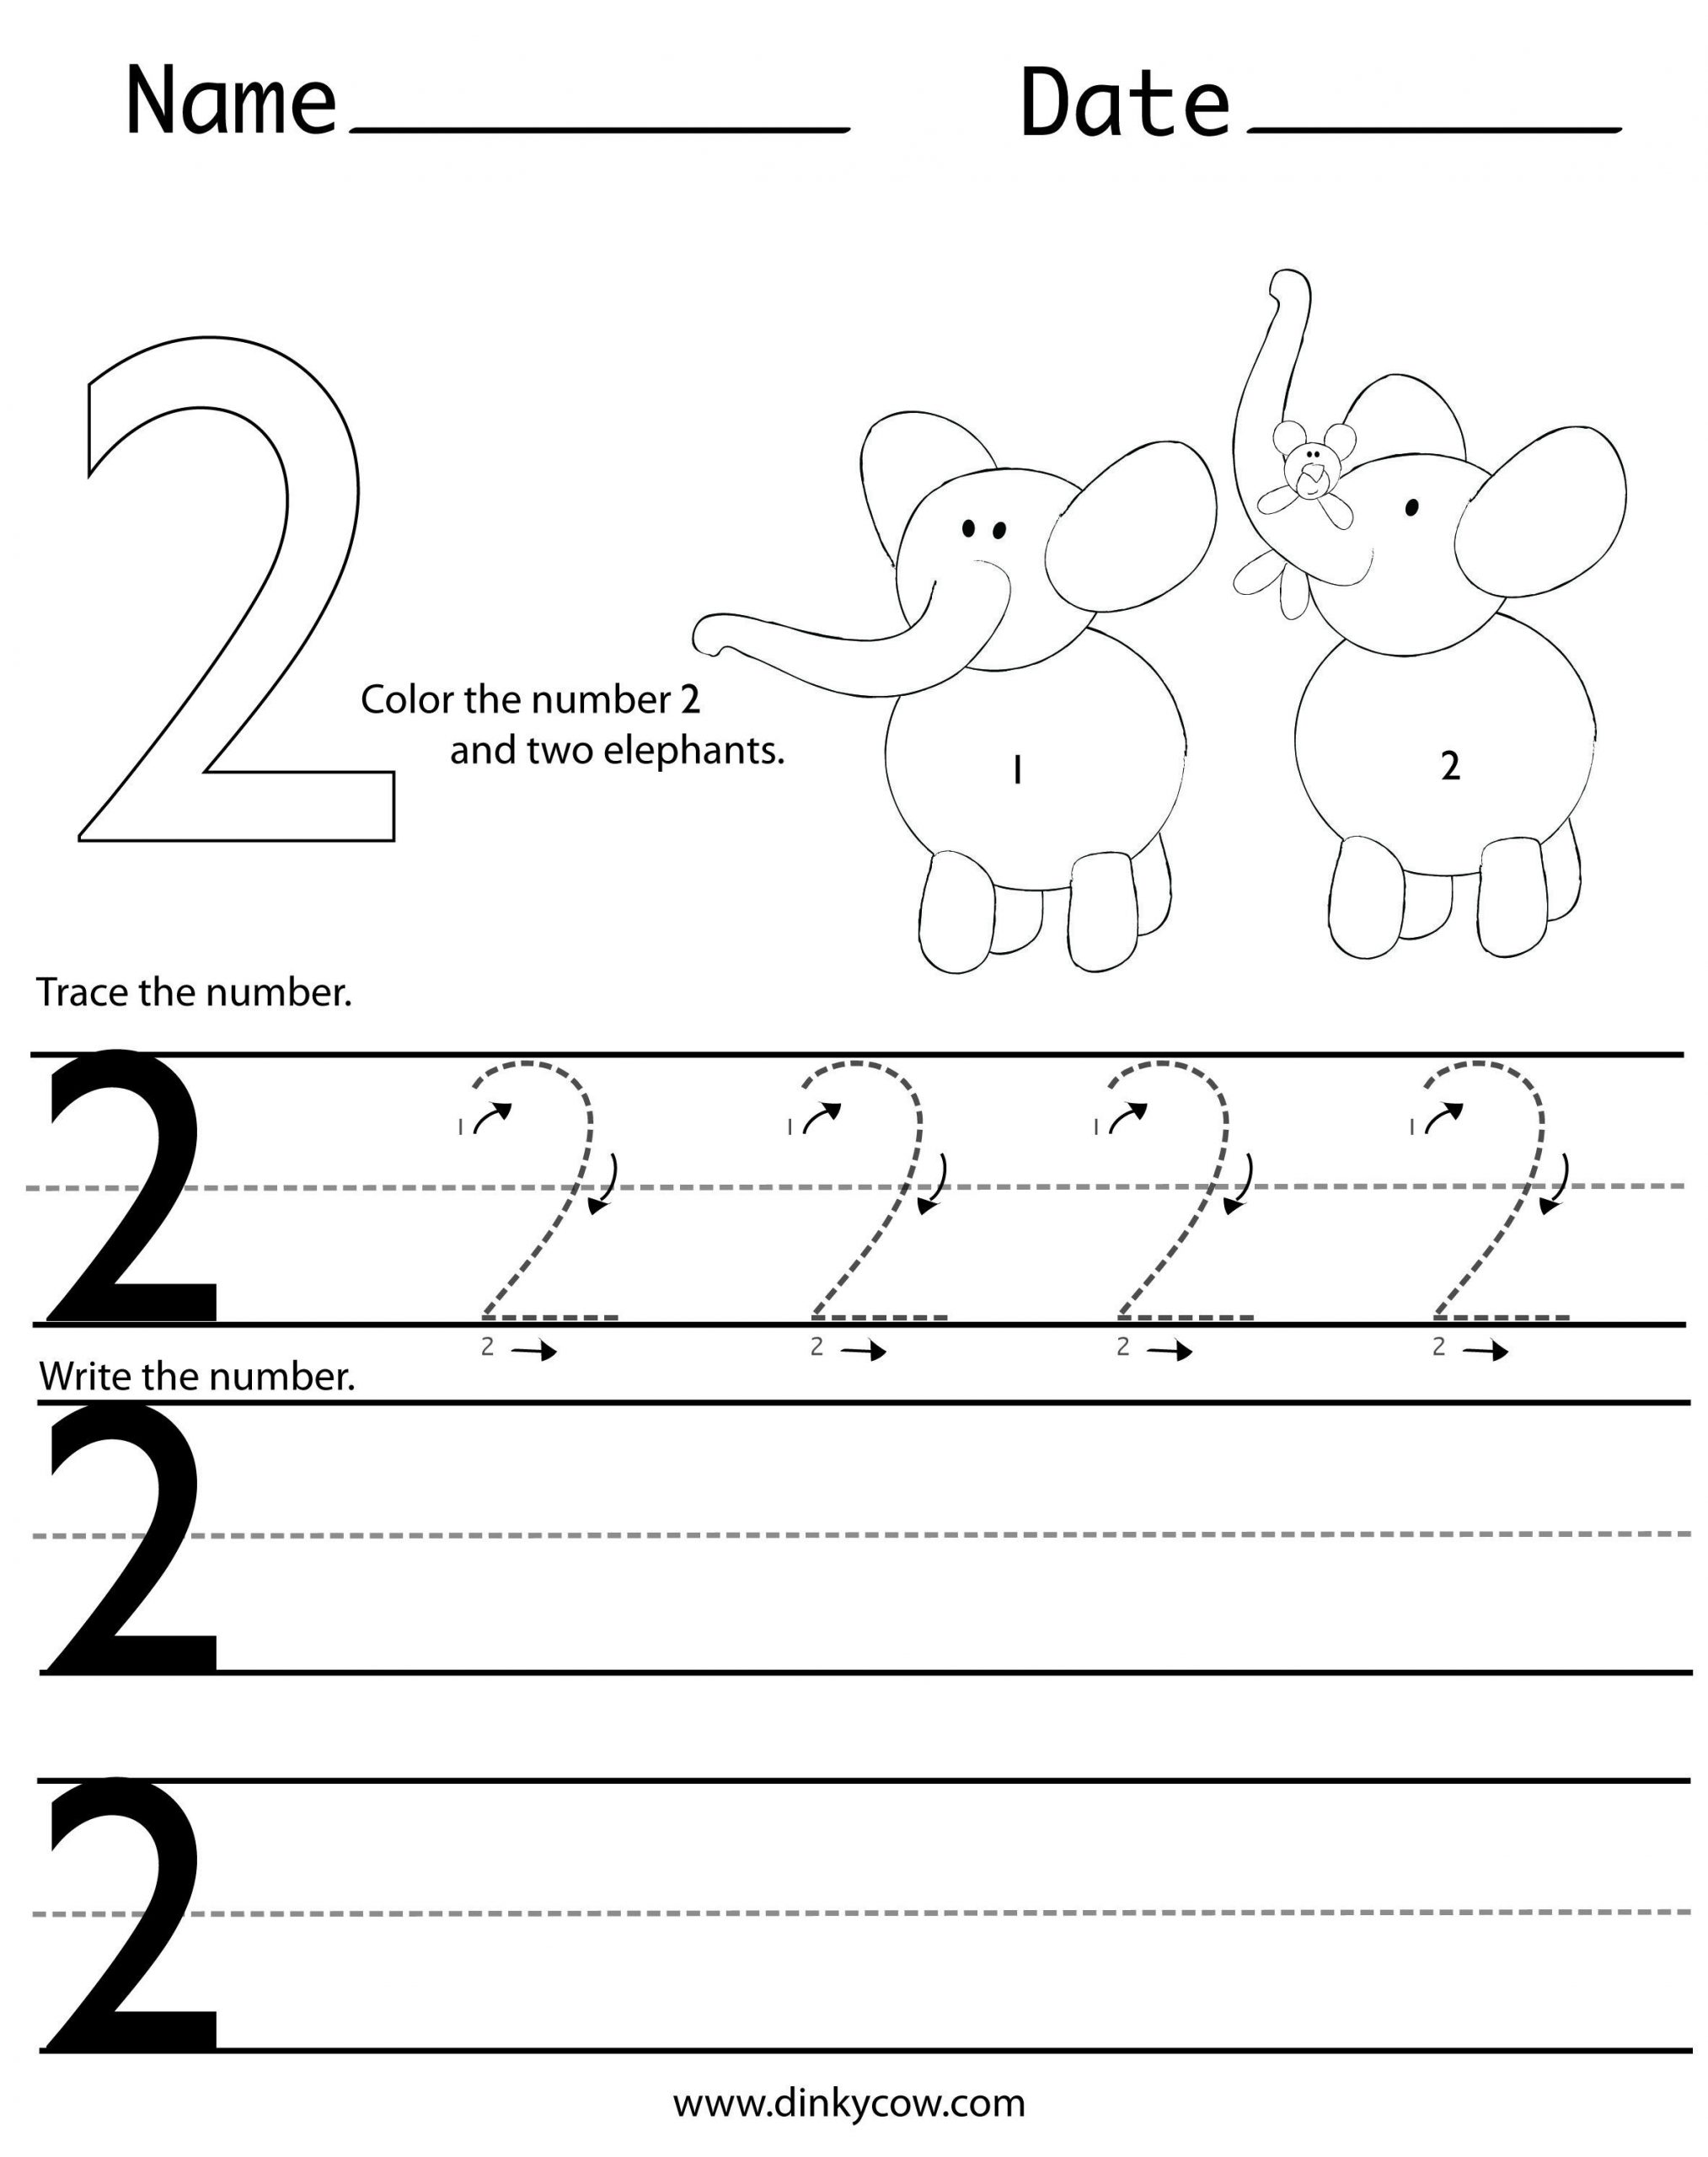 Number 2 Worksheets for Preschool Writing Number 2 2366—2988